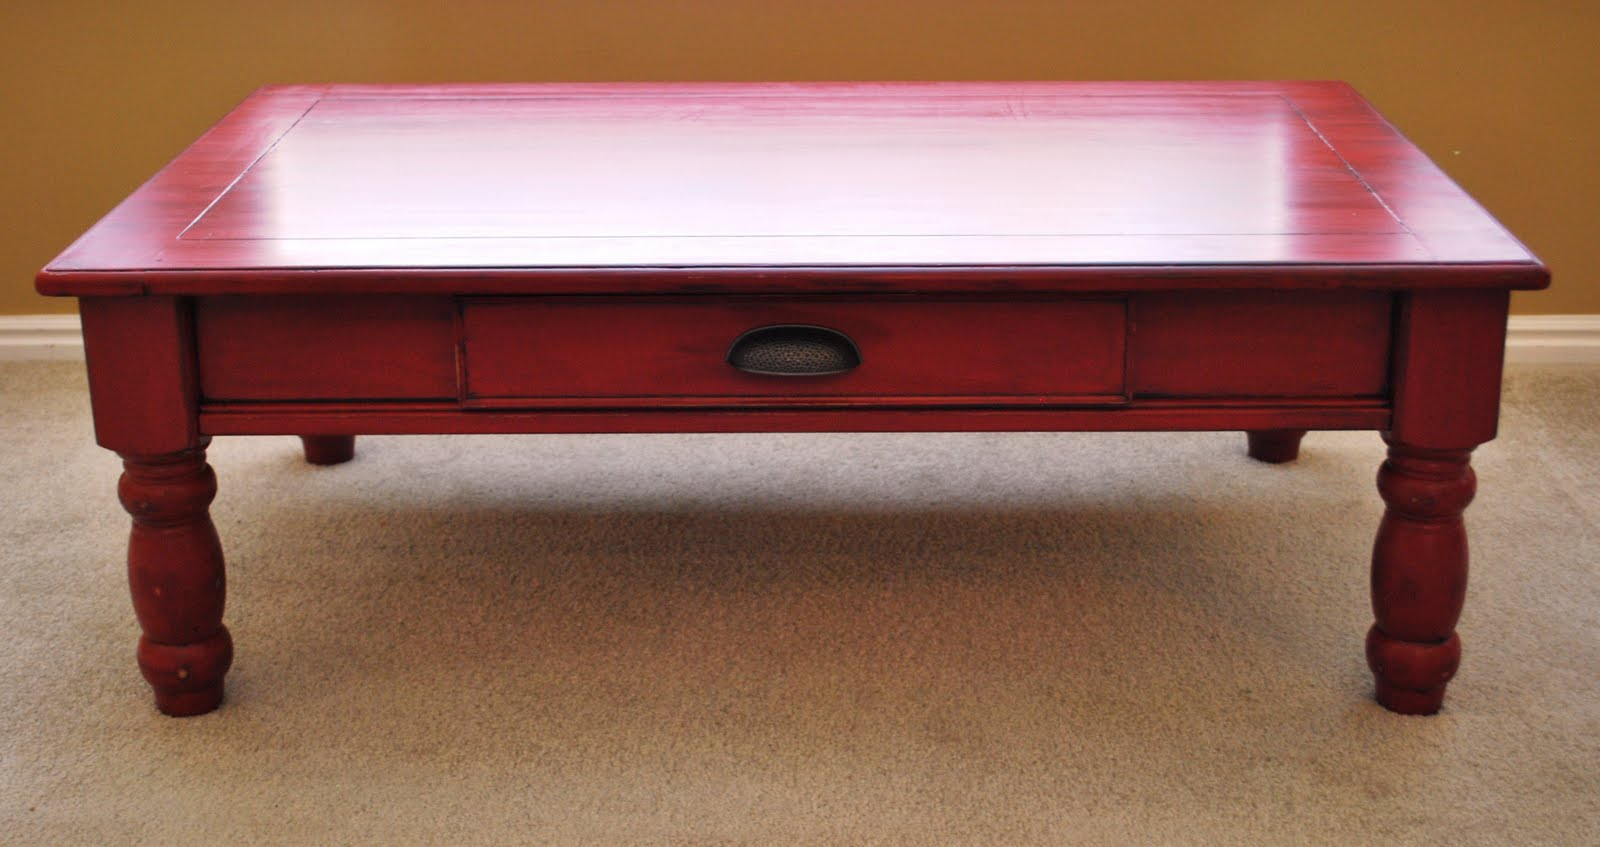 B's Refurnishings: Red Coffee Table - Privately Sold